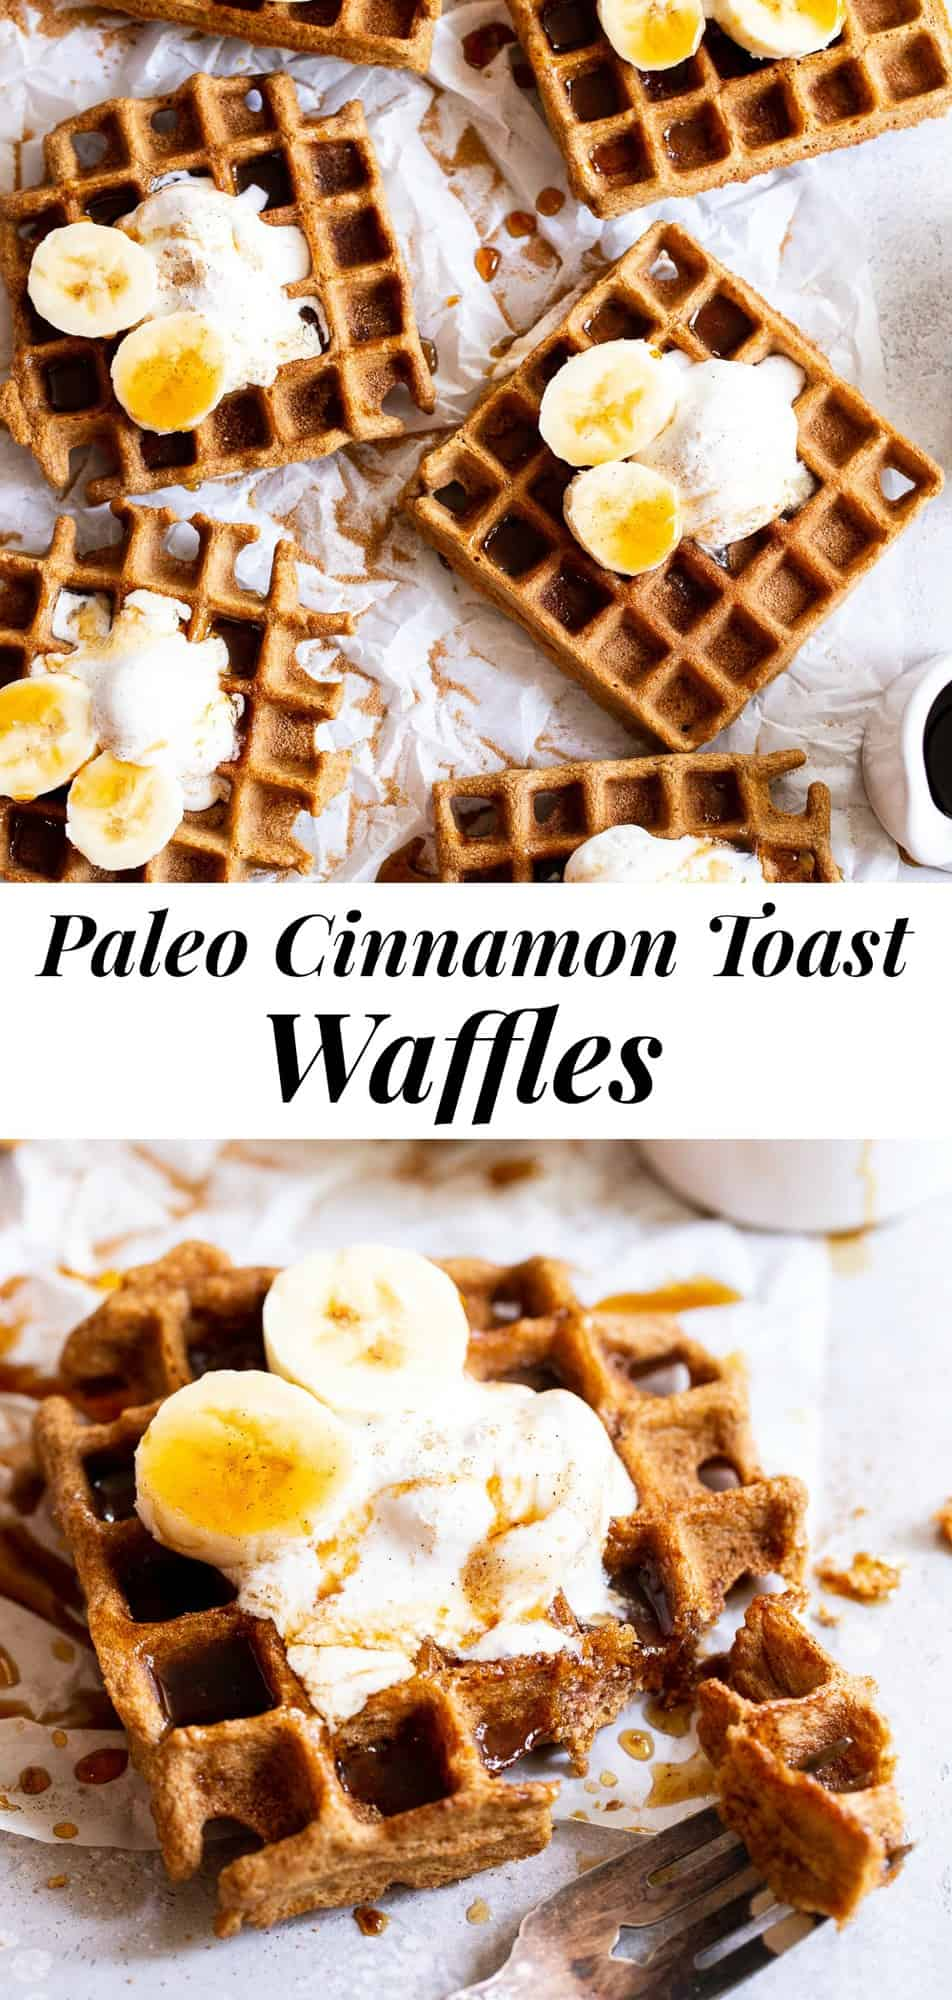 These Cinnamon Toast Paleo Waffles are perfectly crisp and packed with lots of cinnamon sugar flavor!  They're made with coconut and tapioca flour so they're great for those with almond allergies too.  Kid approved, freezable, and perfect topped with fruit, whipped cream, extra cinnamon and maple syrup!  Grain free, dairy free, refined sugar free.  #paleo #paleorecipes #cleaneating #coconutflour